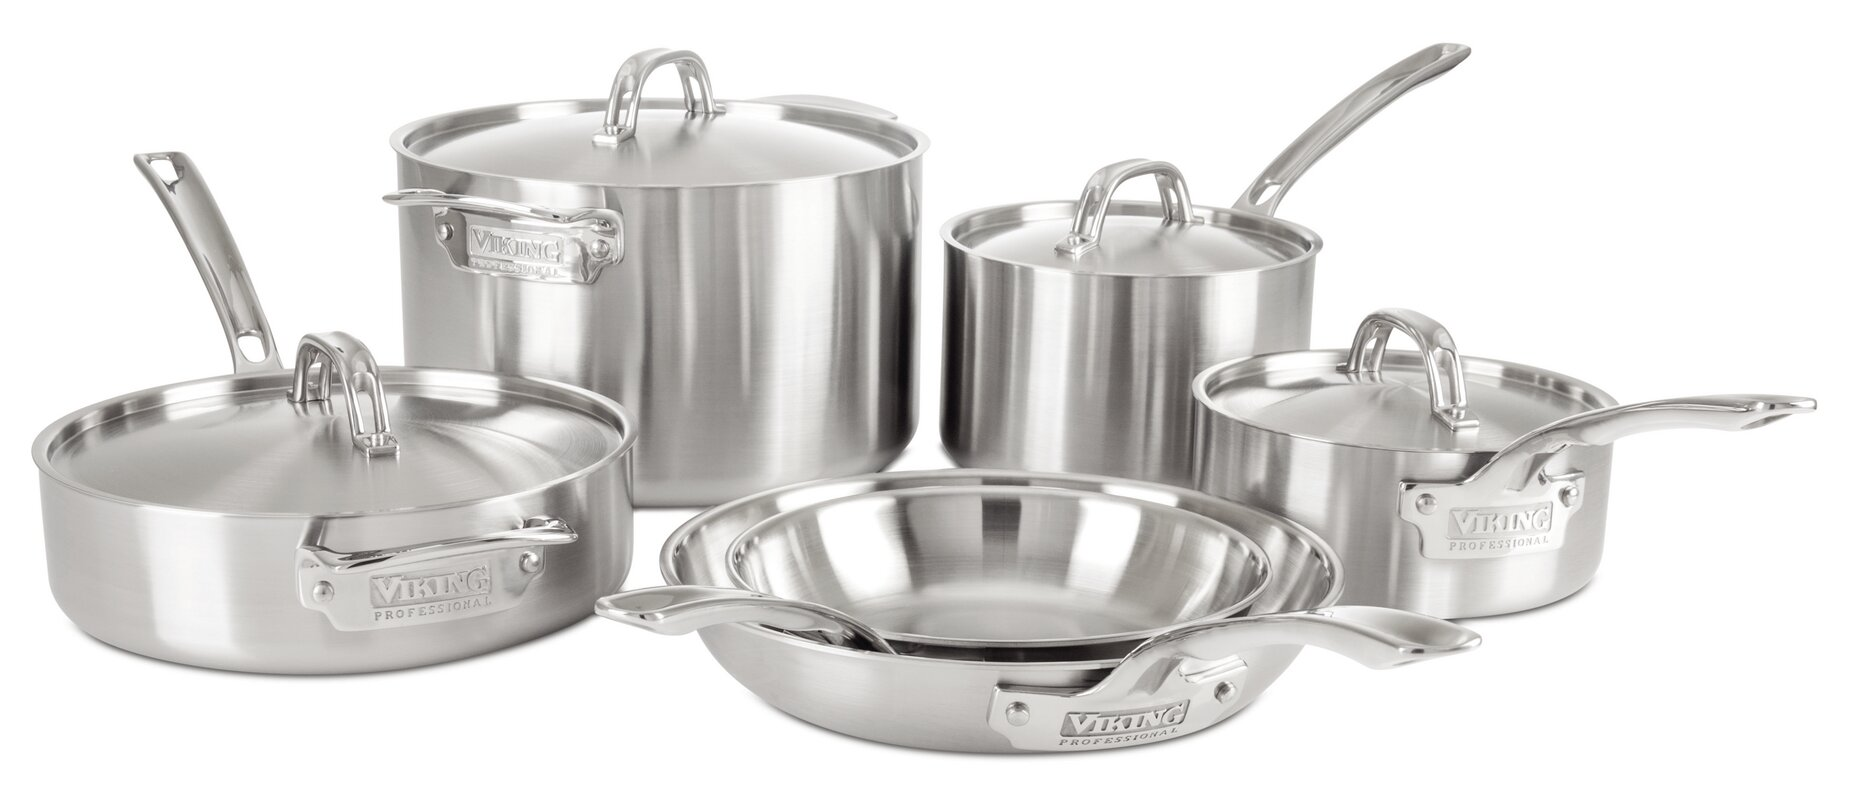 Professional 5 Ply 10 Piece Cookware Set